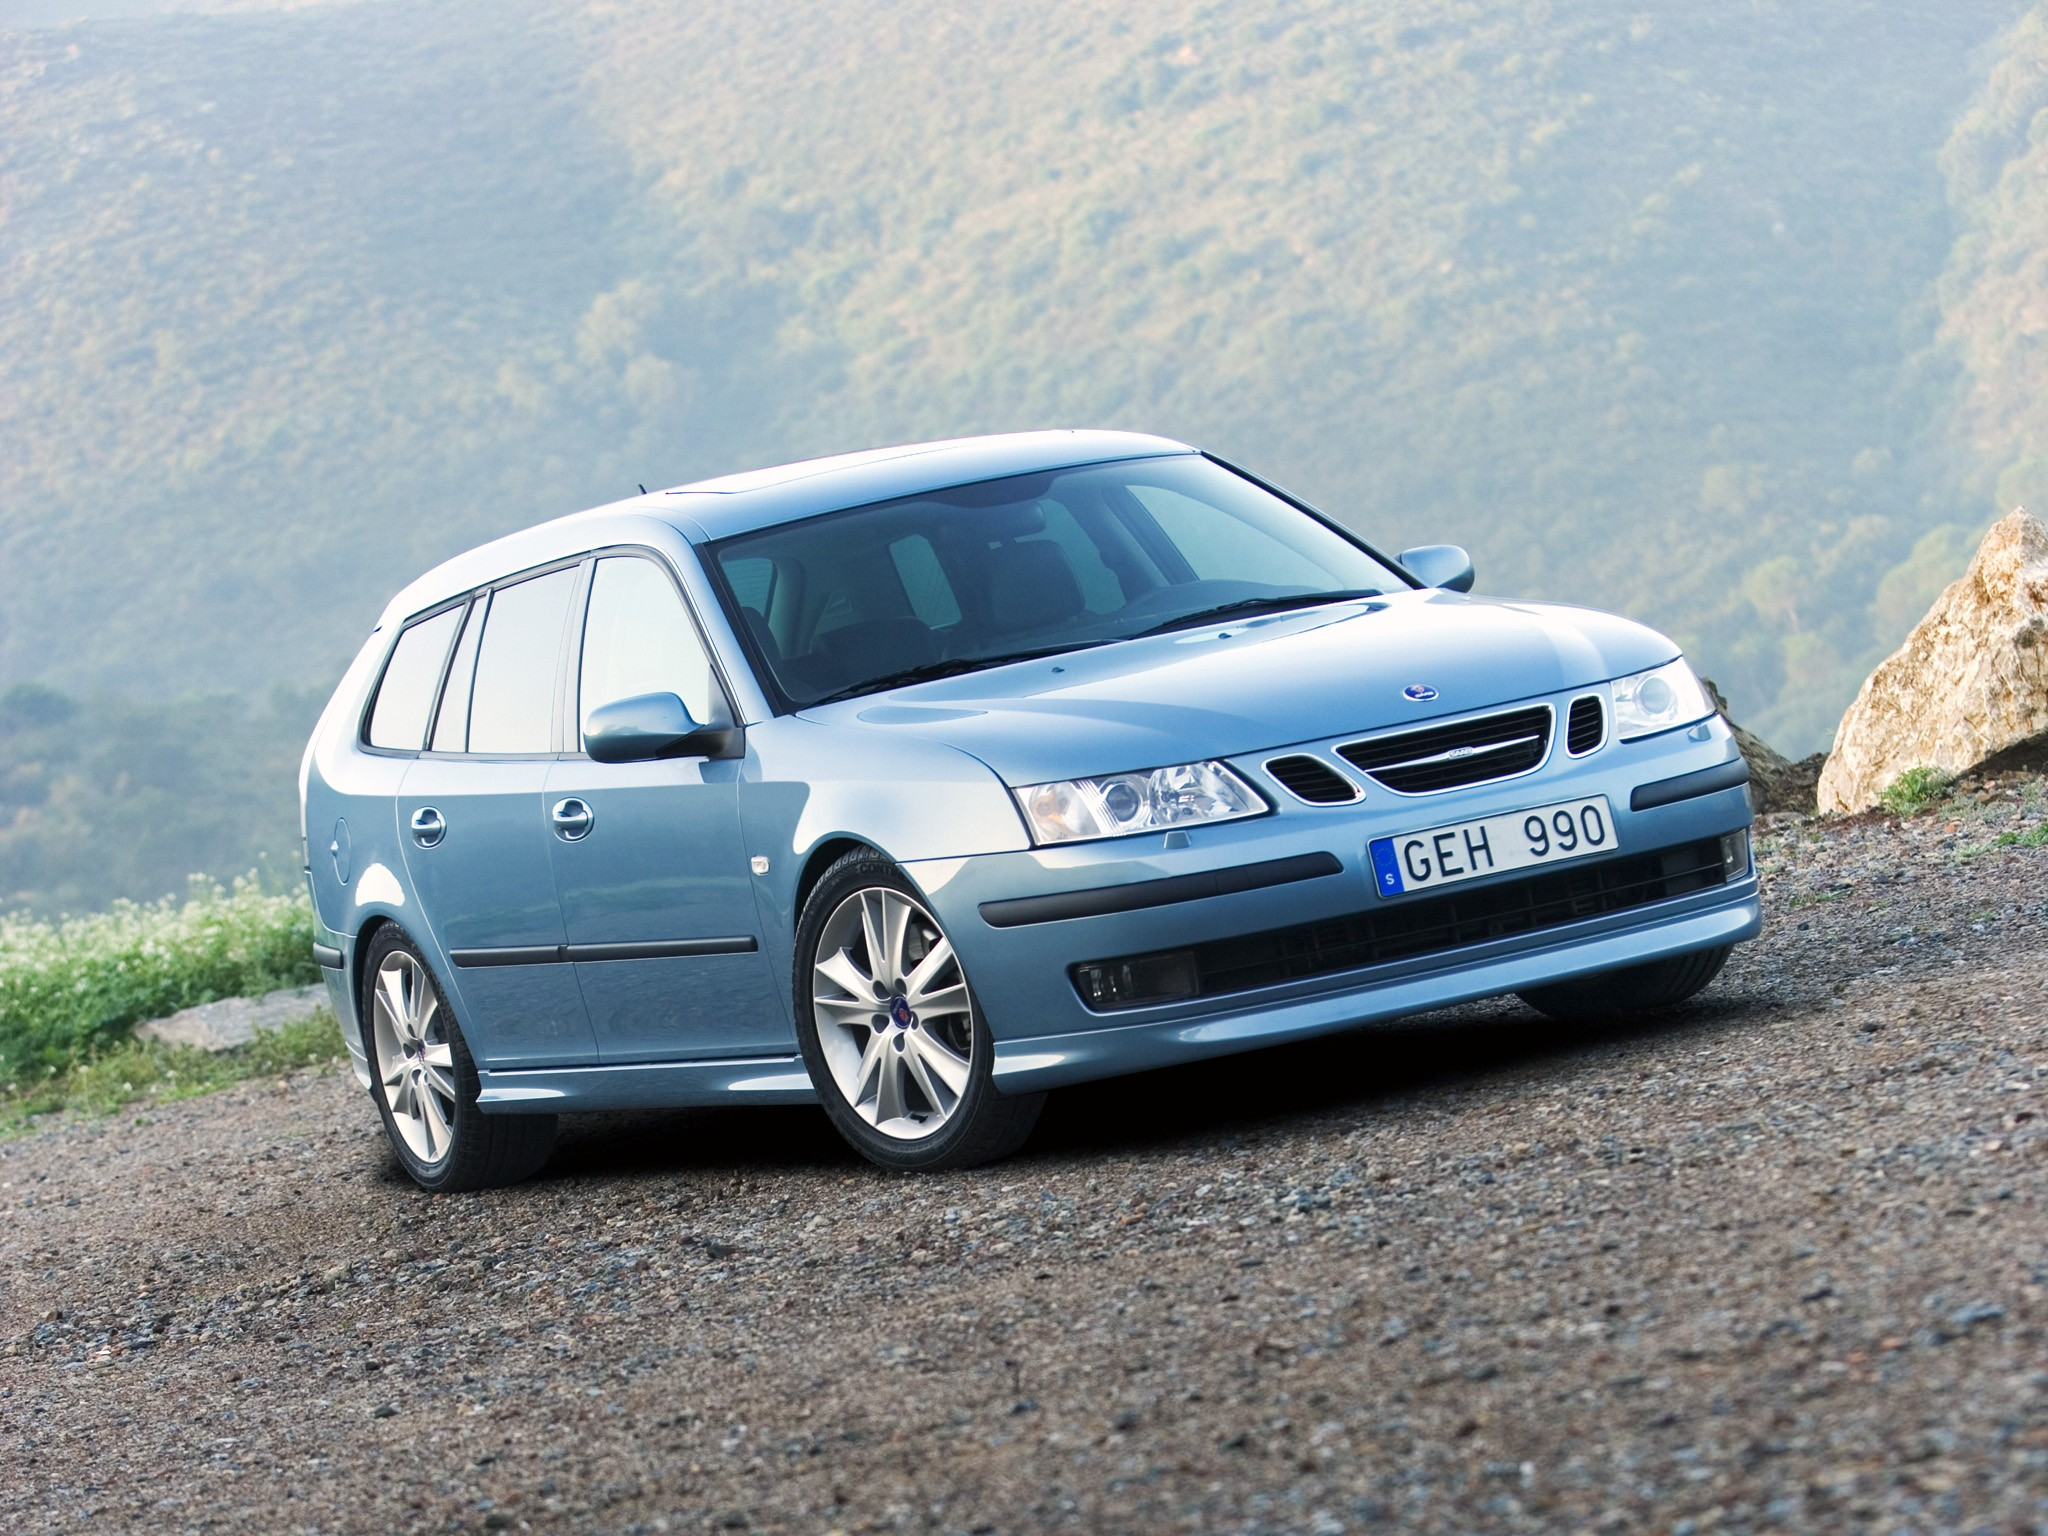 saab 9 3 sportcombi specs 2004 2005 2006 2007 2008. Black Bedroom Furniture Sets. Home Design Ideas